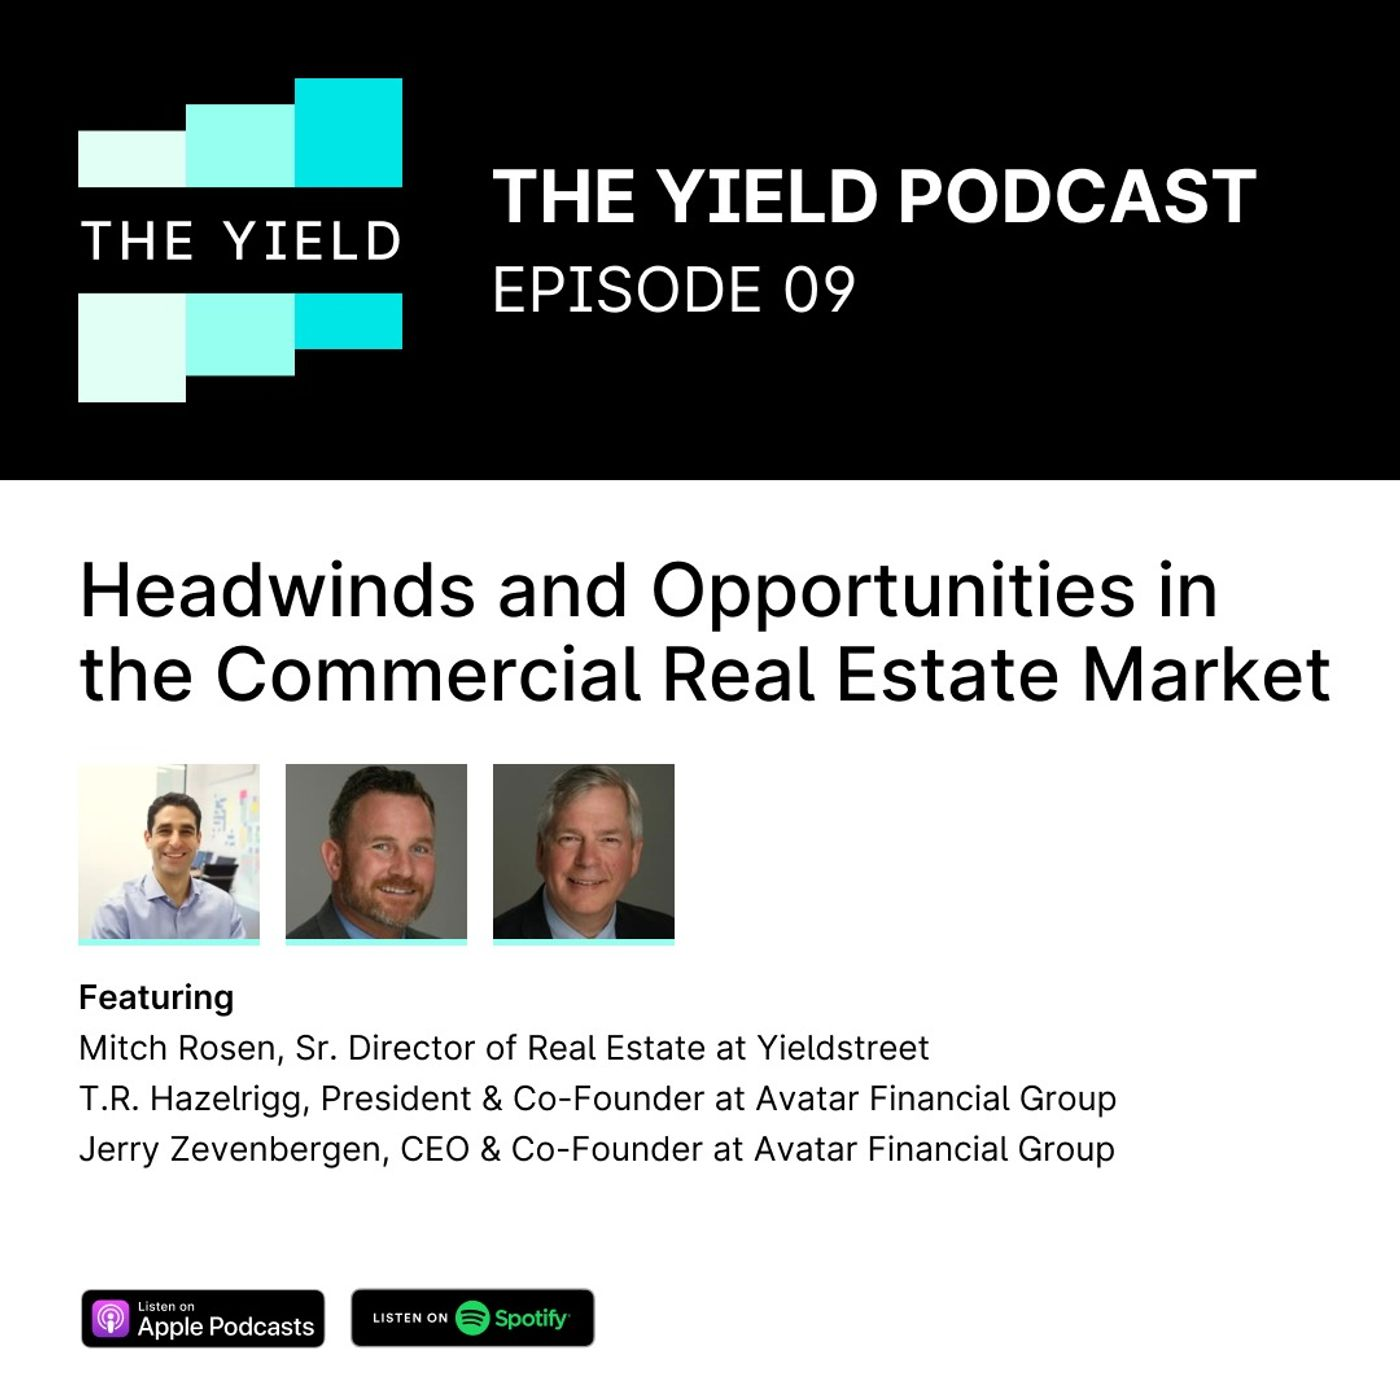 Headwinds and Opportunities in the Commercial Real Estate Market